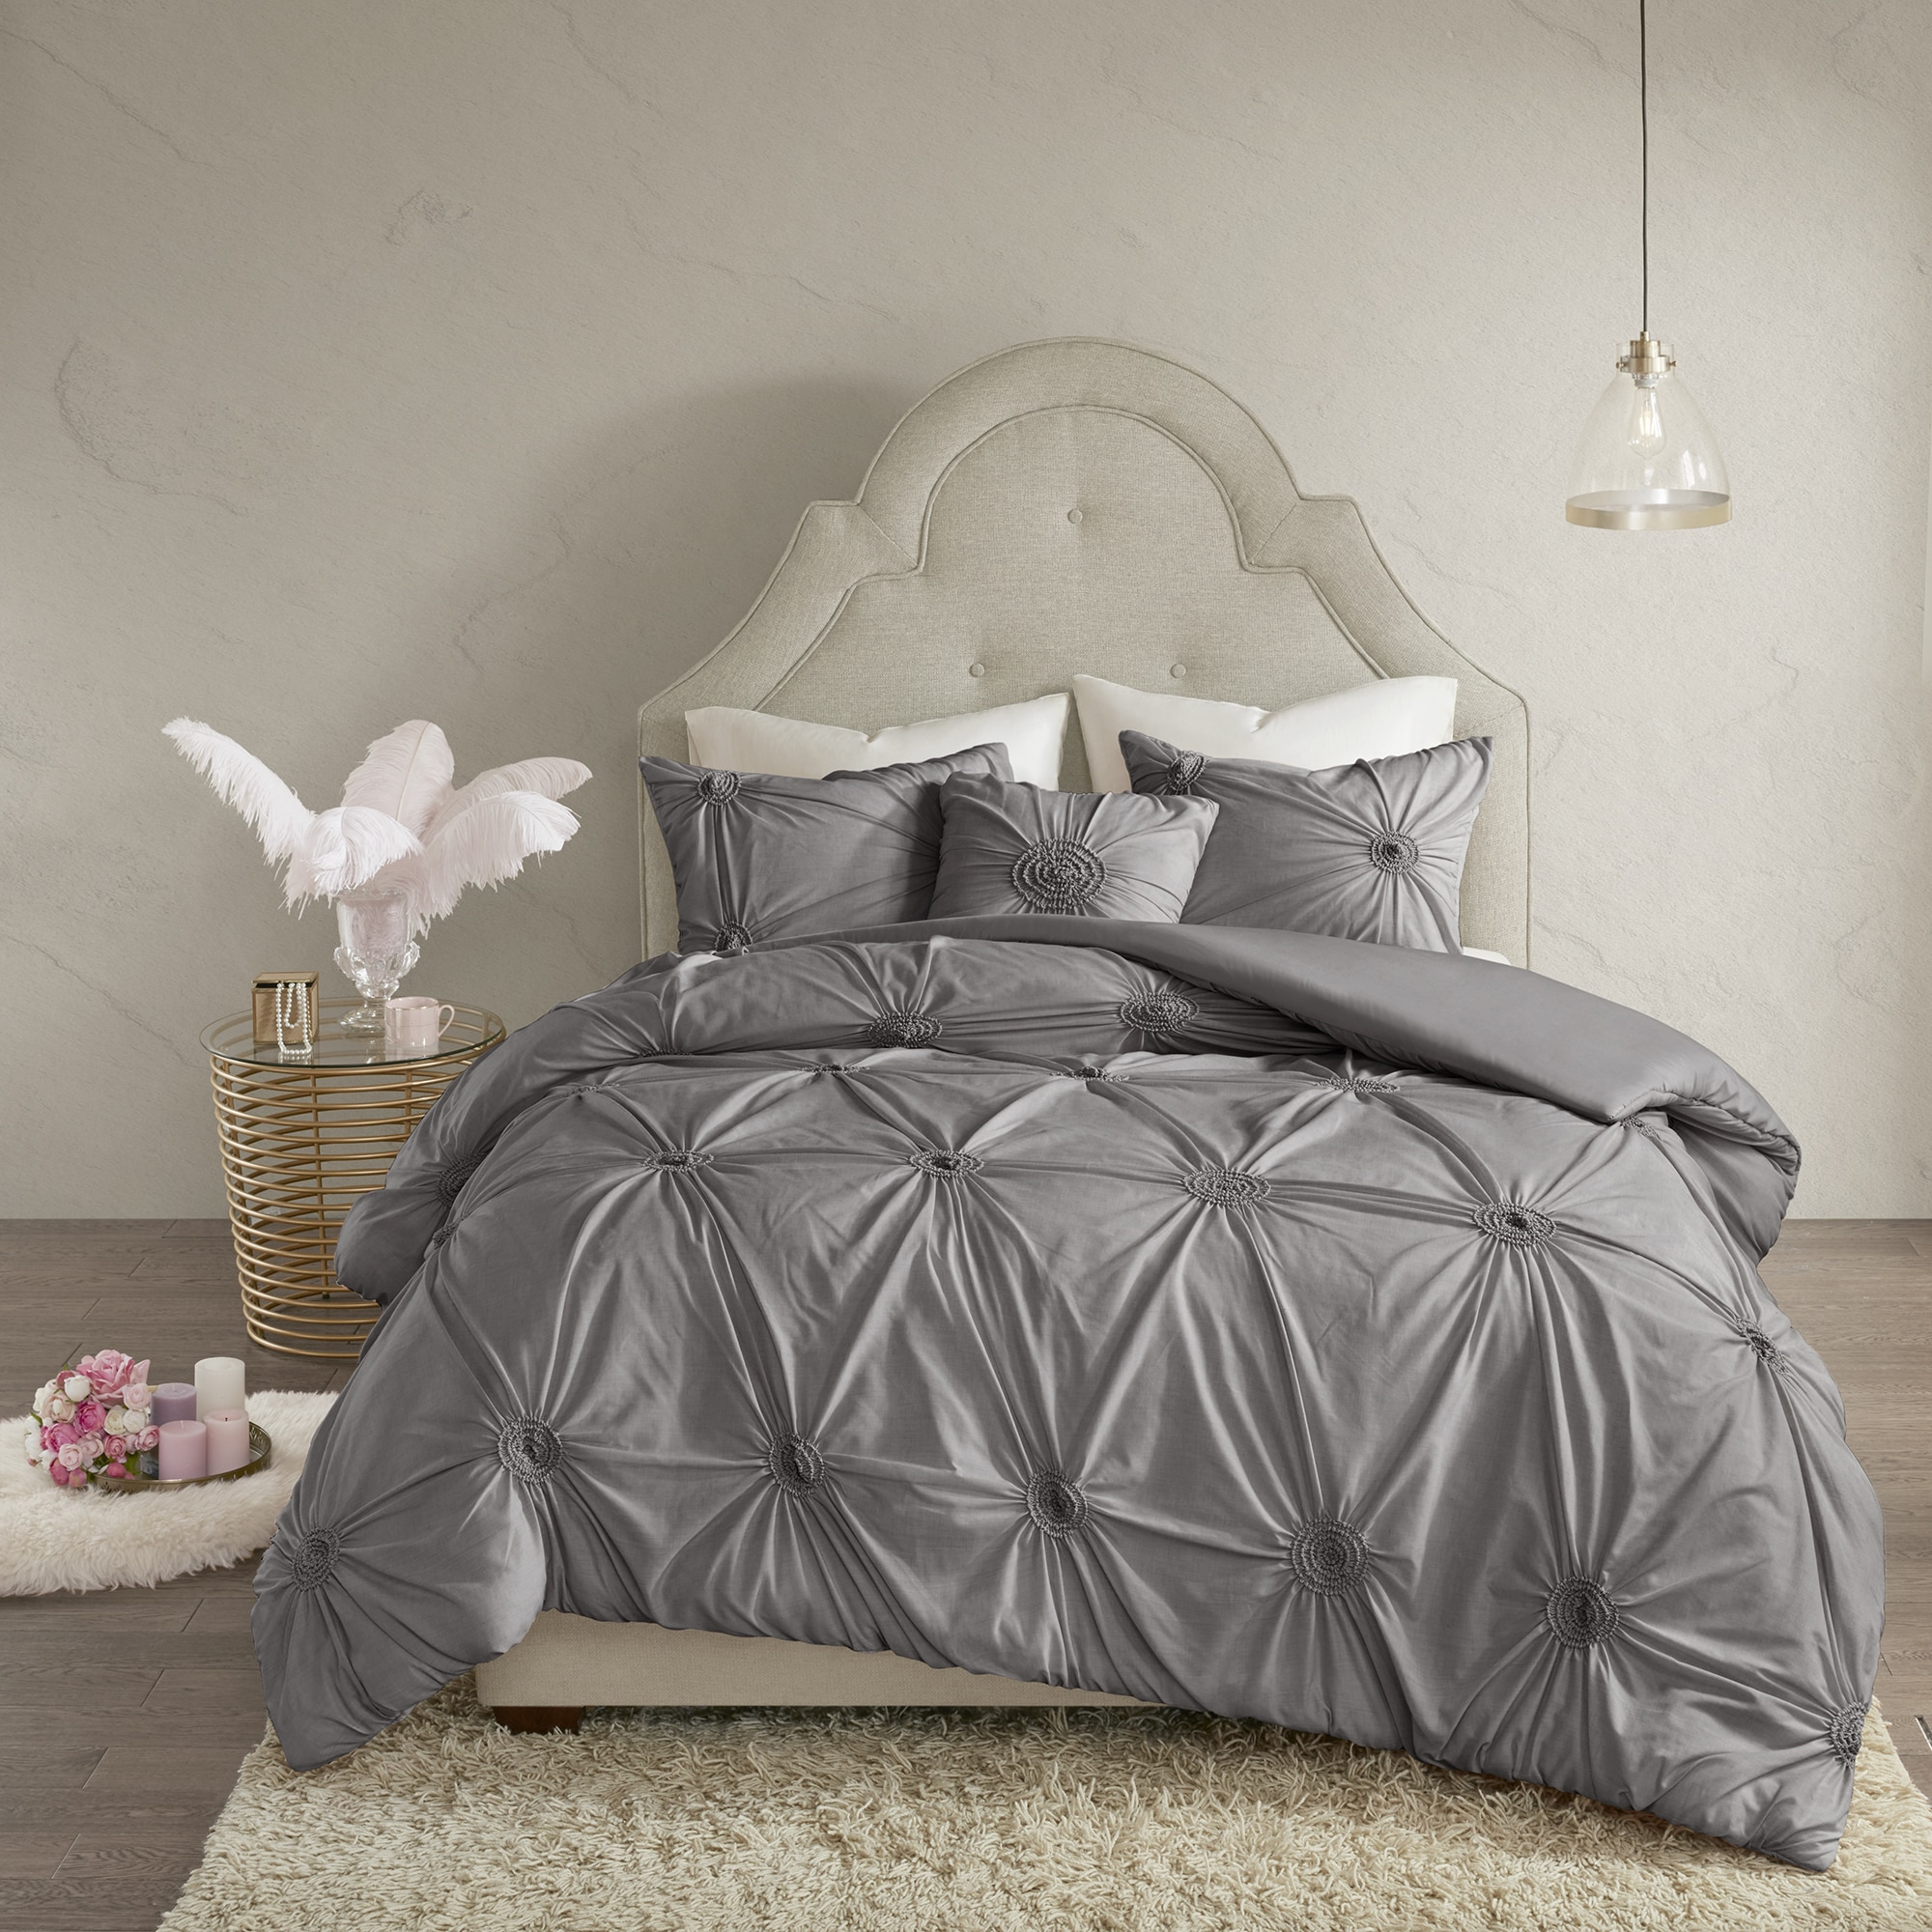 products cover light the duvet stephanie lifestyle corfee white new dark and